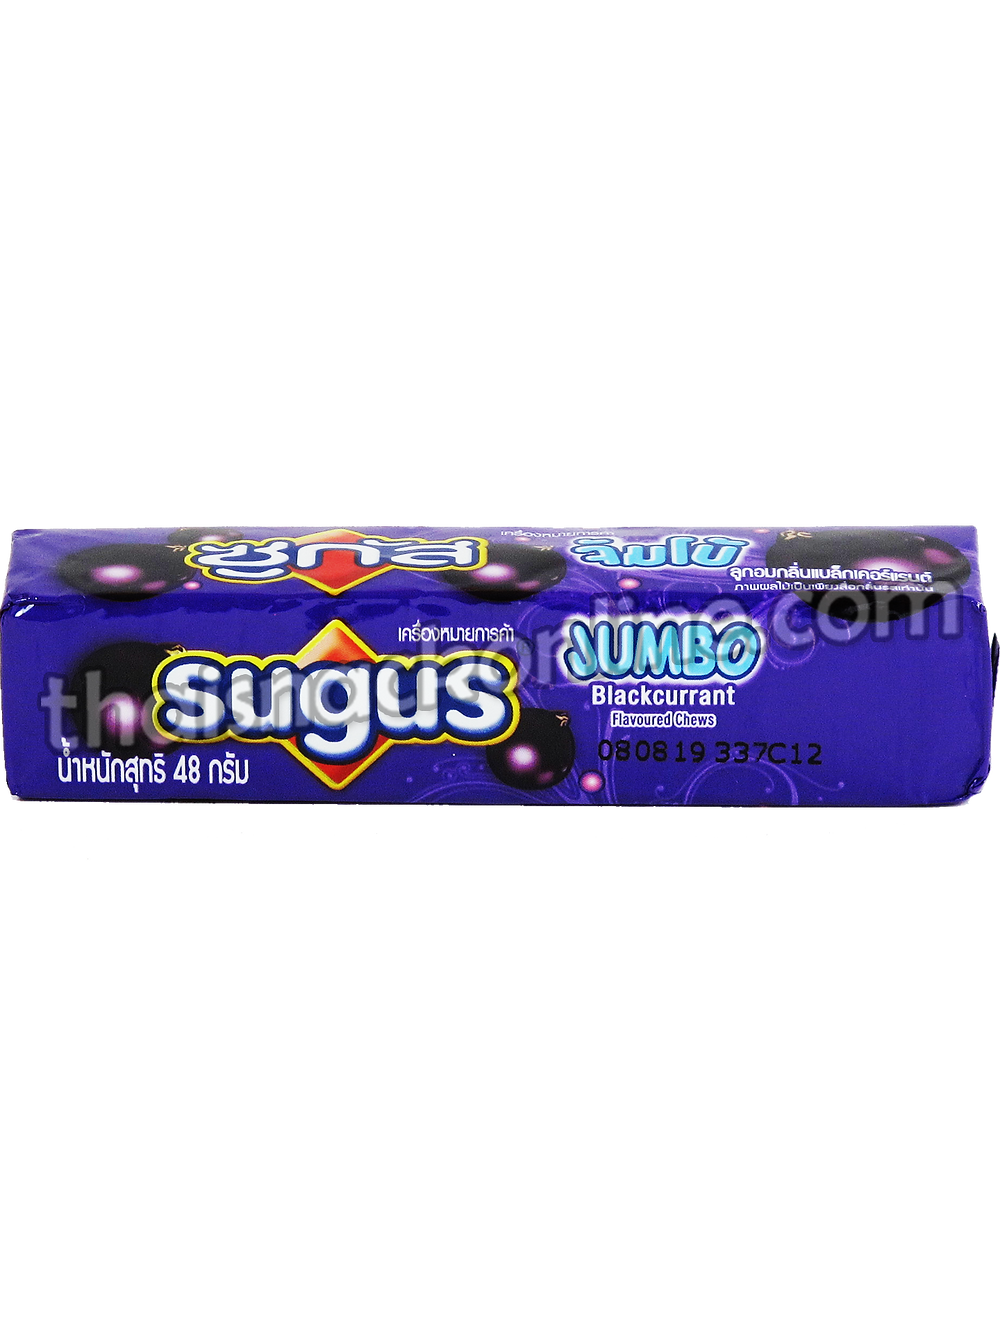 Sugus - Chewy Candy Jumbo Blackcurrant